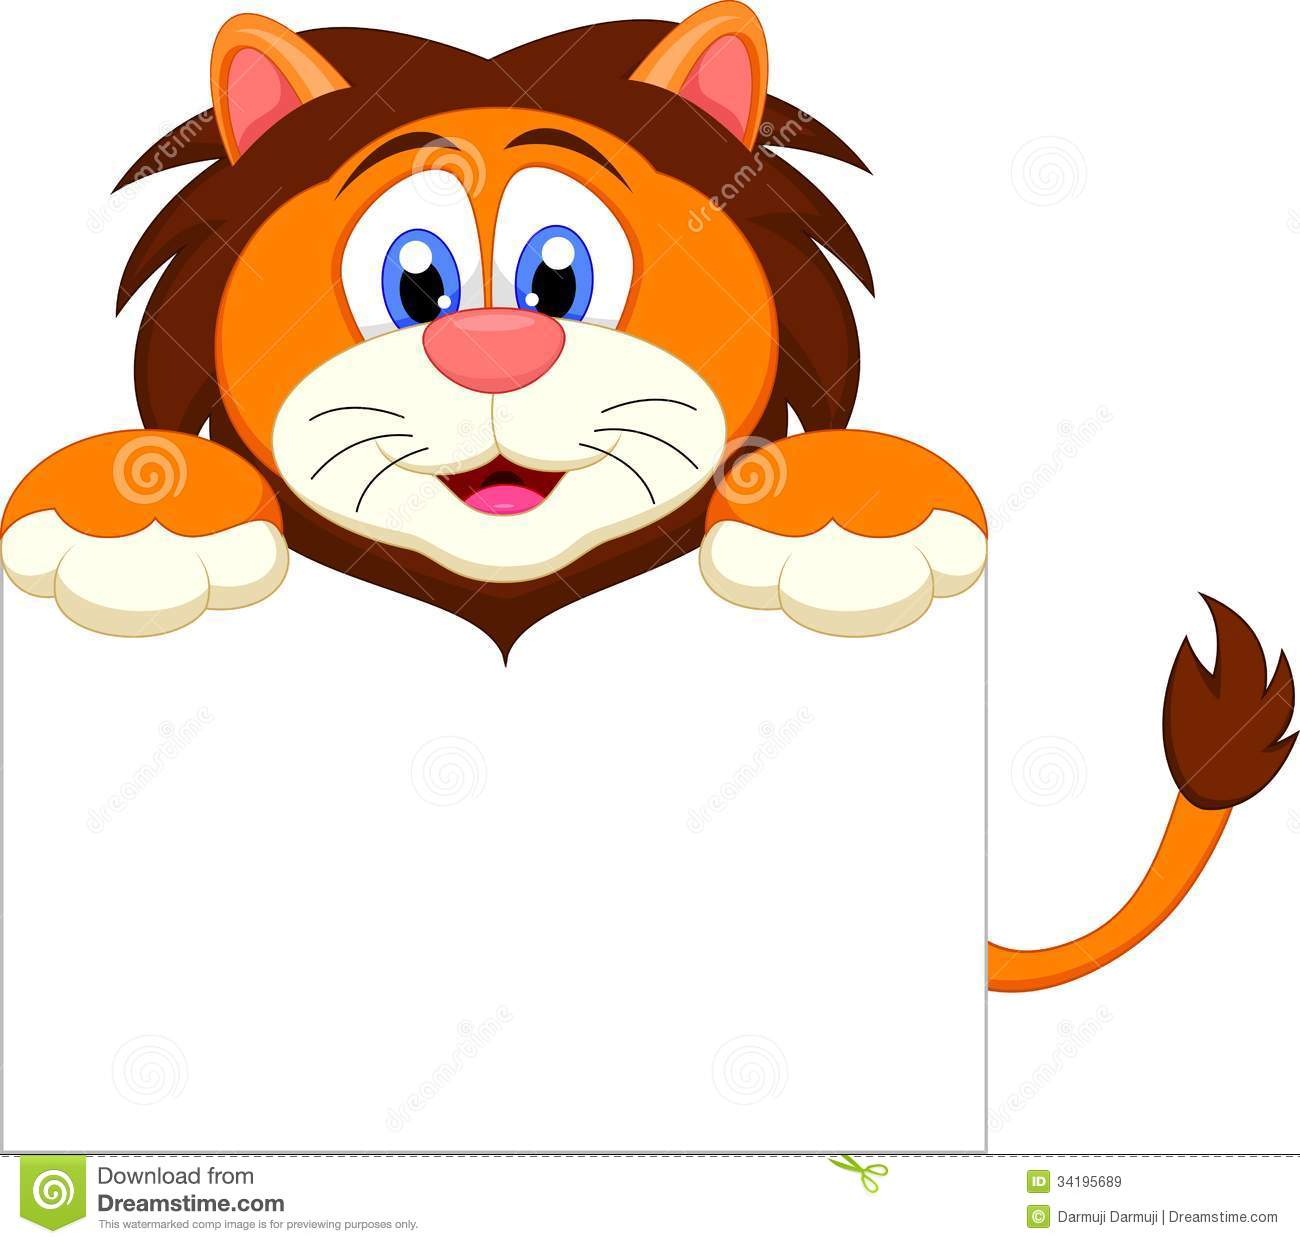 Cartoon Characters Cute : Cute lion cartoon character with blank sign royalty free